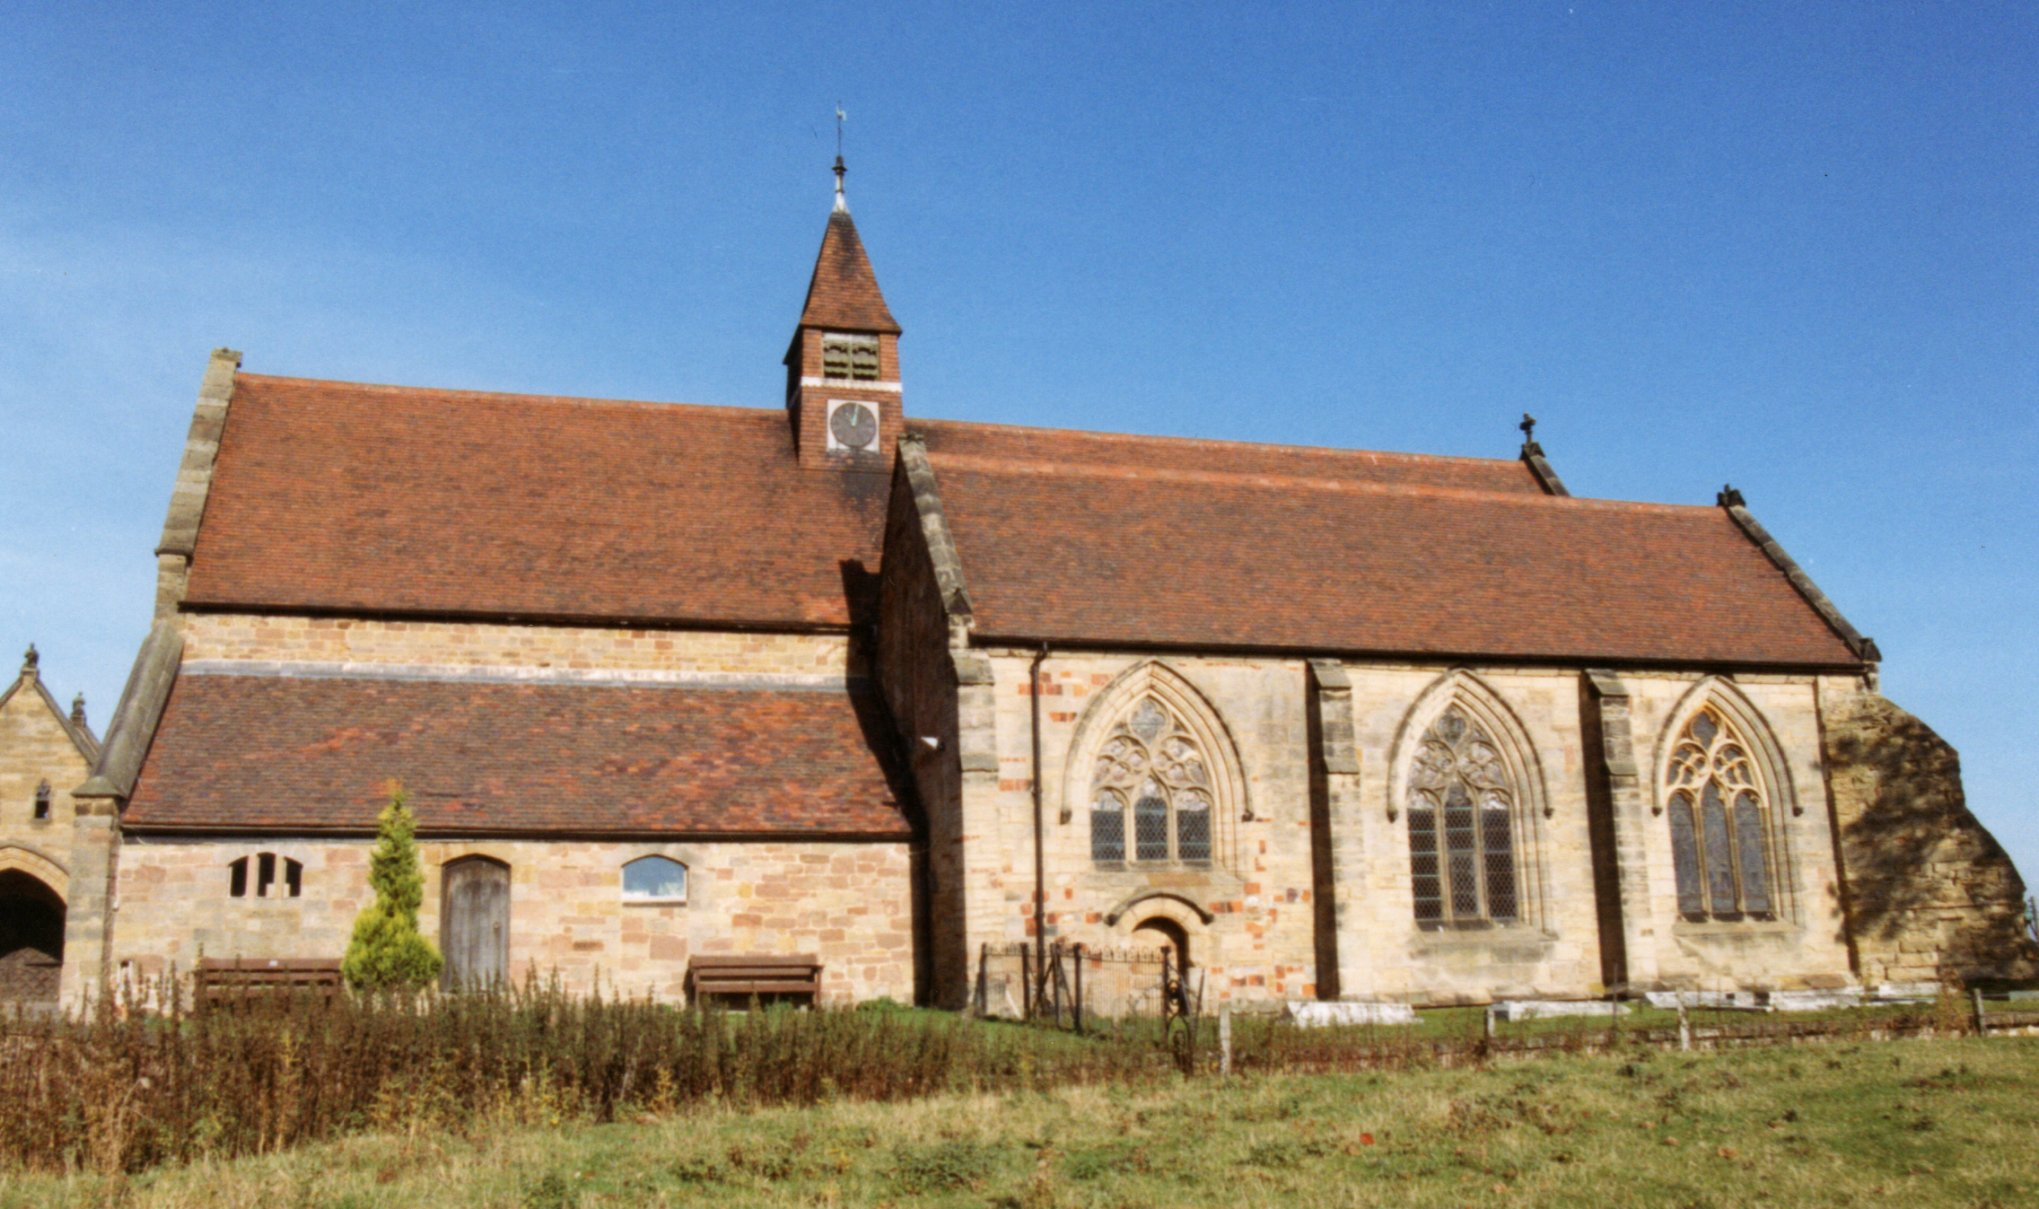 Church of Our Lady, Merevale